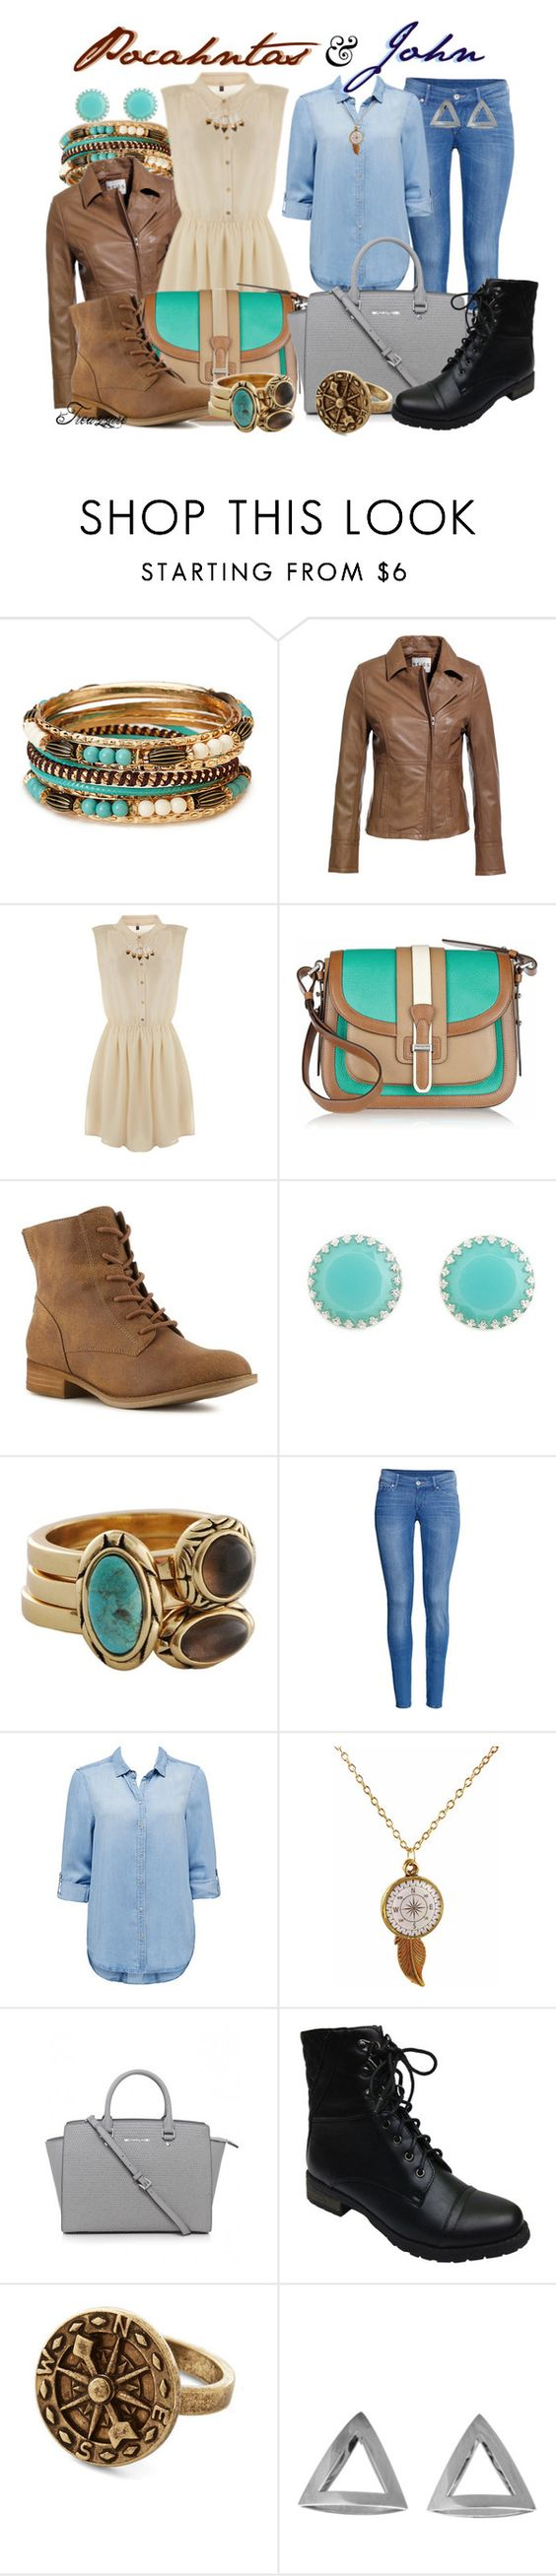 """""""They Don't Know About Us"""" by wickedxcheshire ❤ liked on Polyvore featuring Forever 21, Reiss, TALLY WEiJL, Michael Kors, Crown Vintage, Charlotte Russe, Barse, H&M, Forever New and Bamboo"""